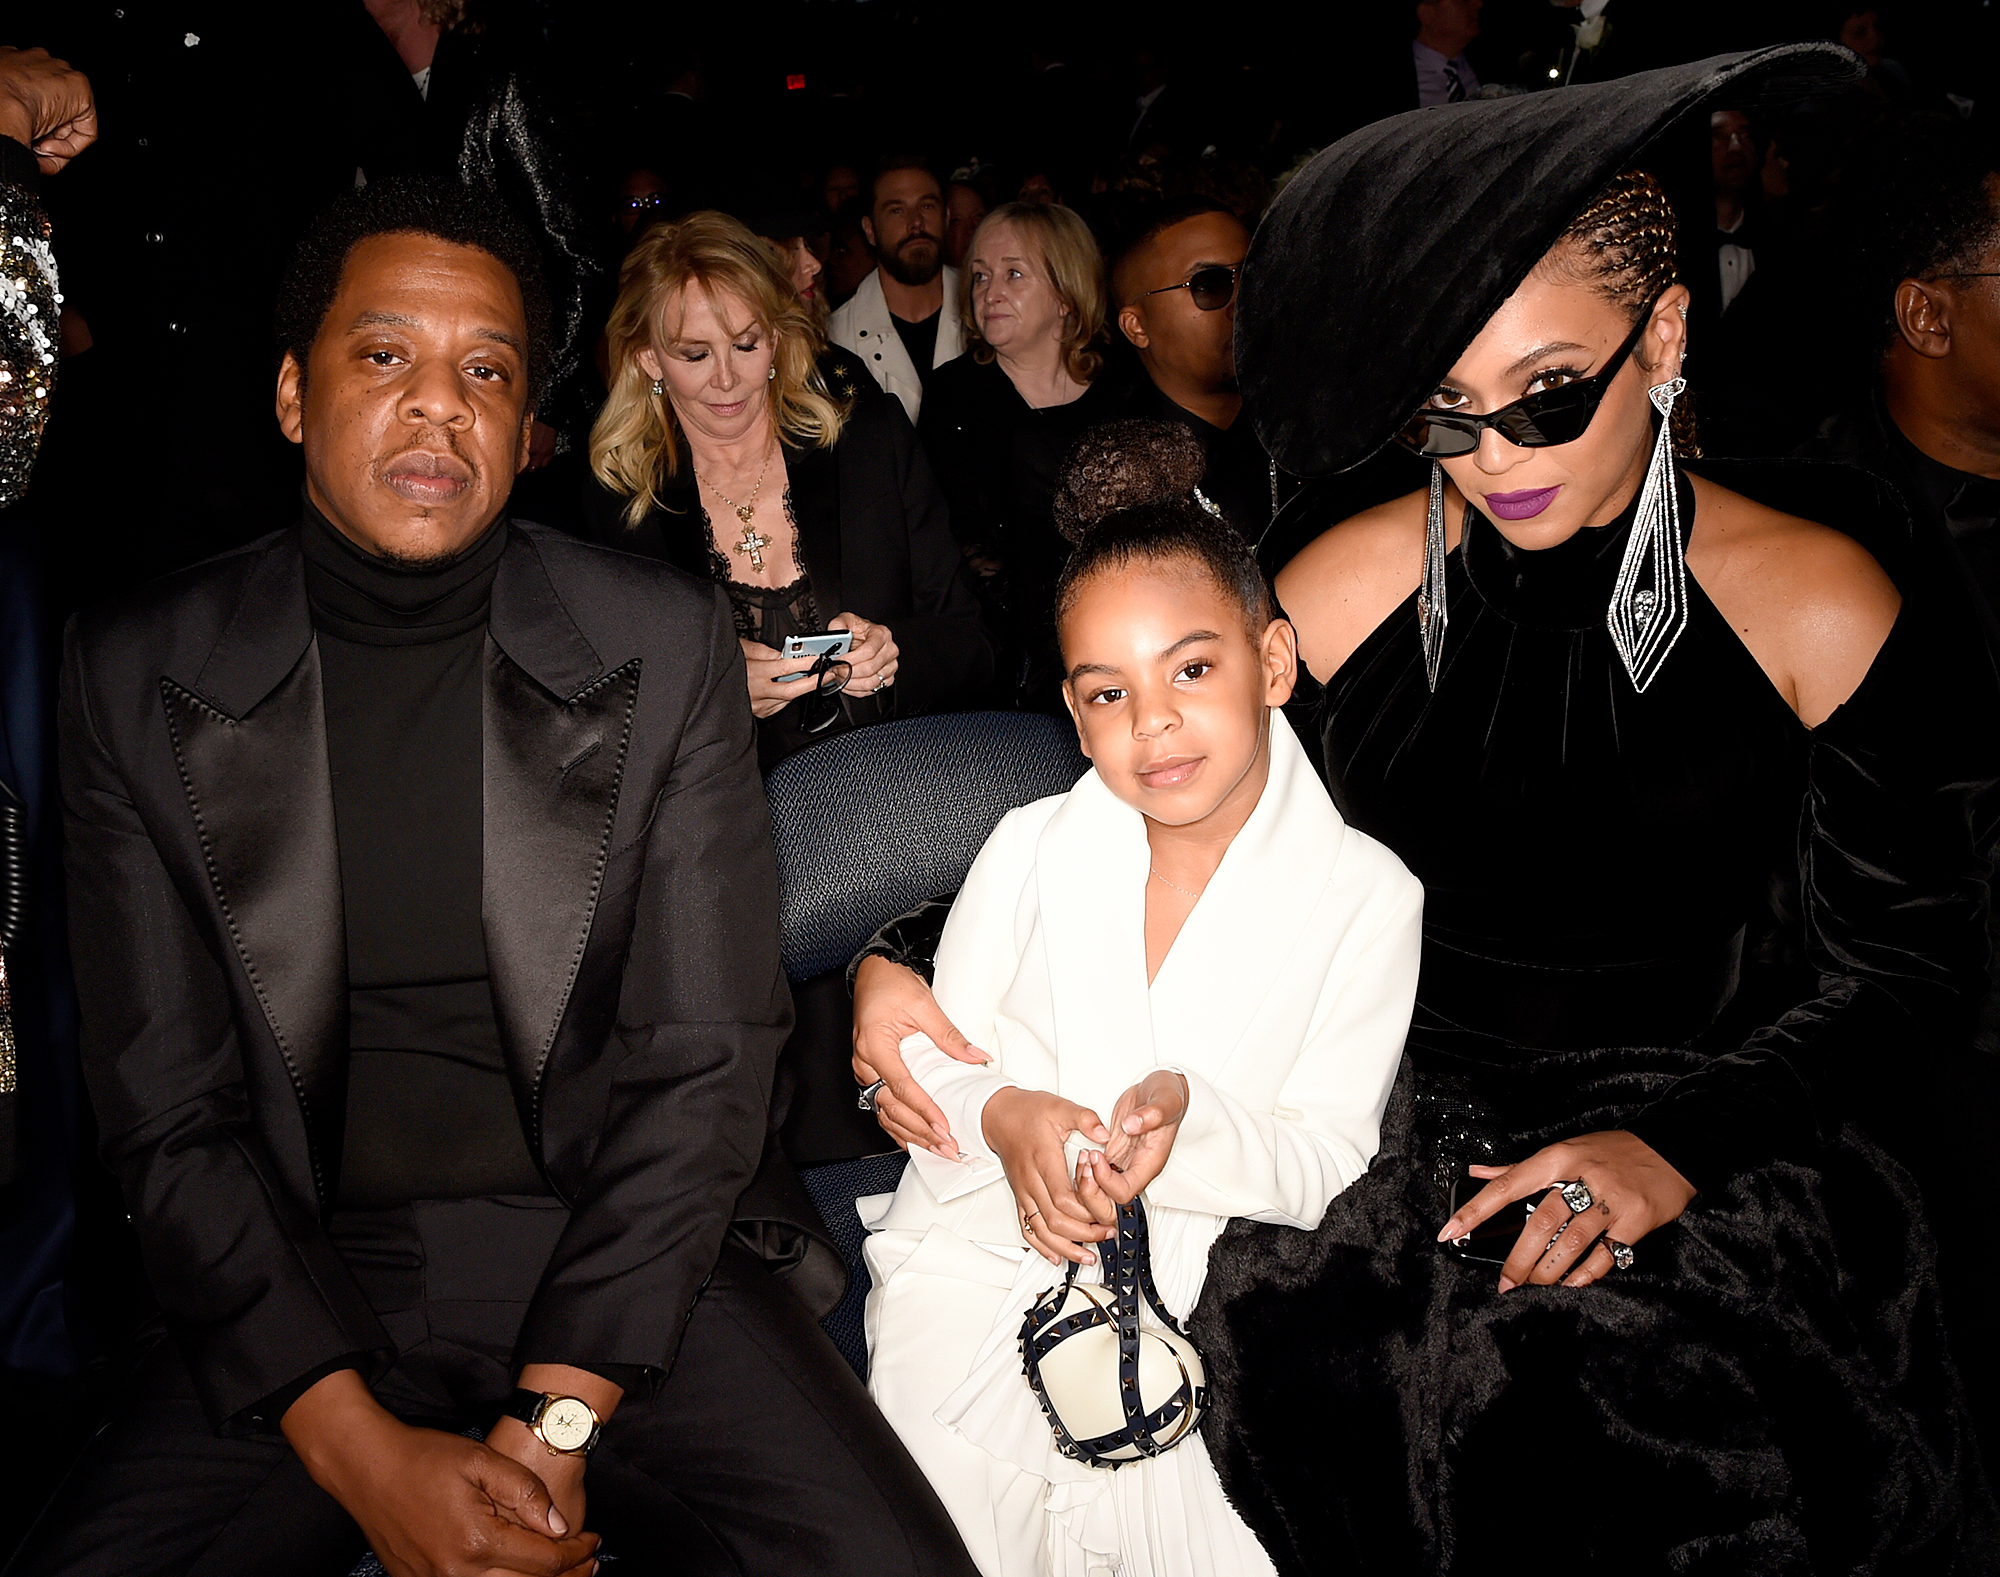 jay-z-blue-ivy-beyonce - Jay-Z, Blue Ivy and Beyonce at The 60th Annual Grammy Awards on January 28, 2018.